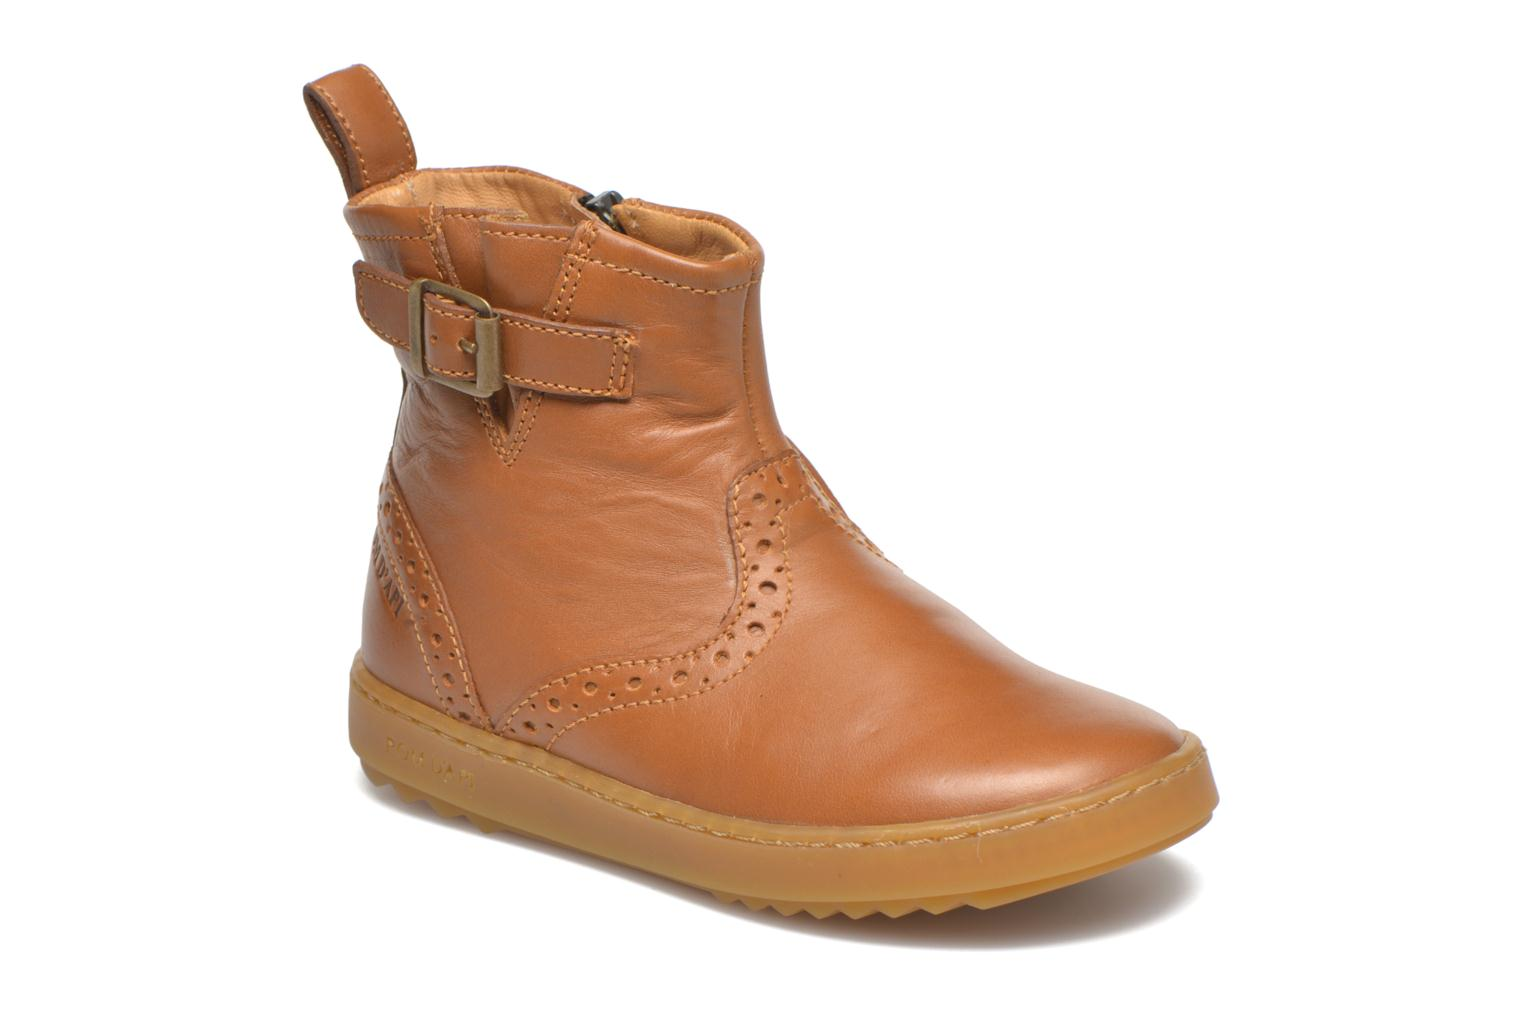 Wouf Boots Camel